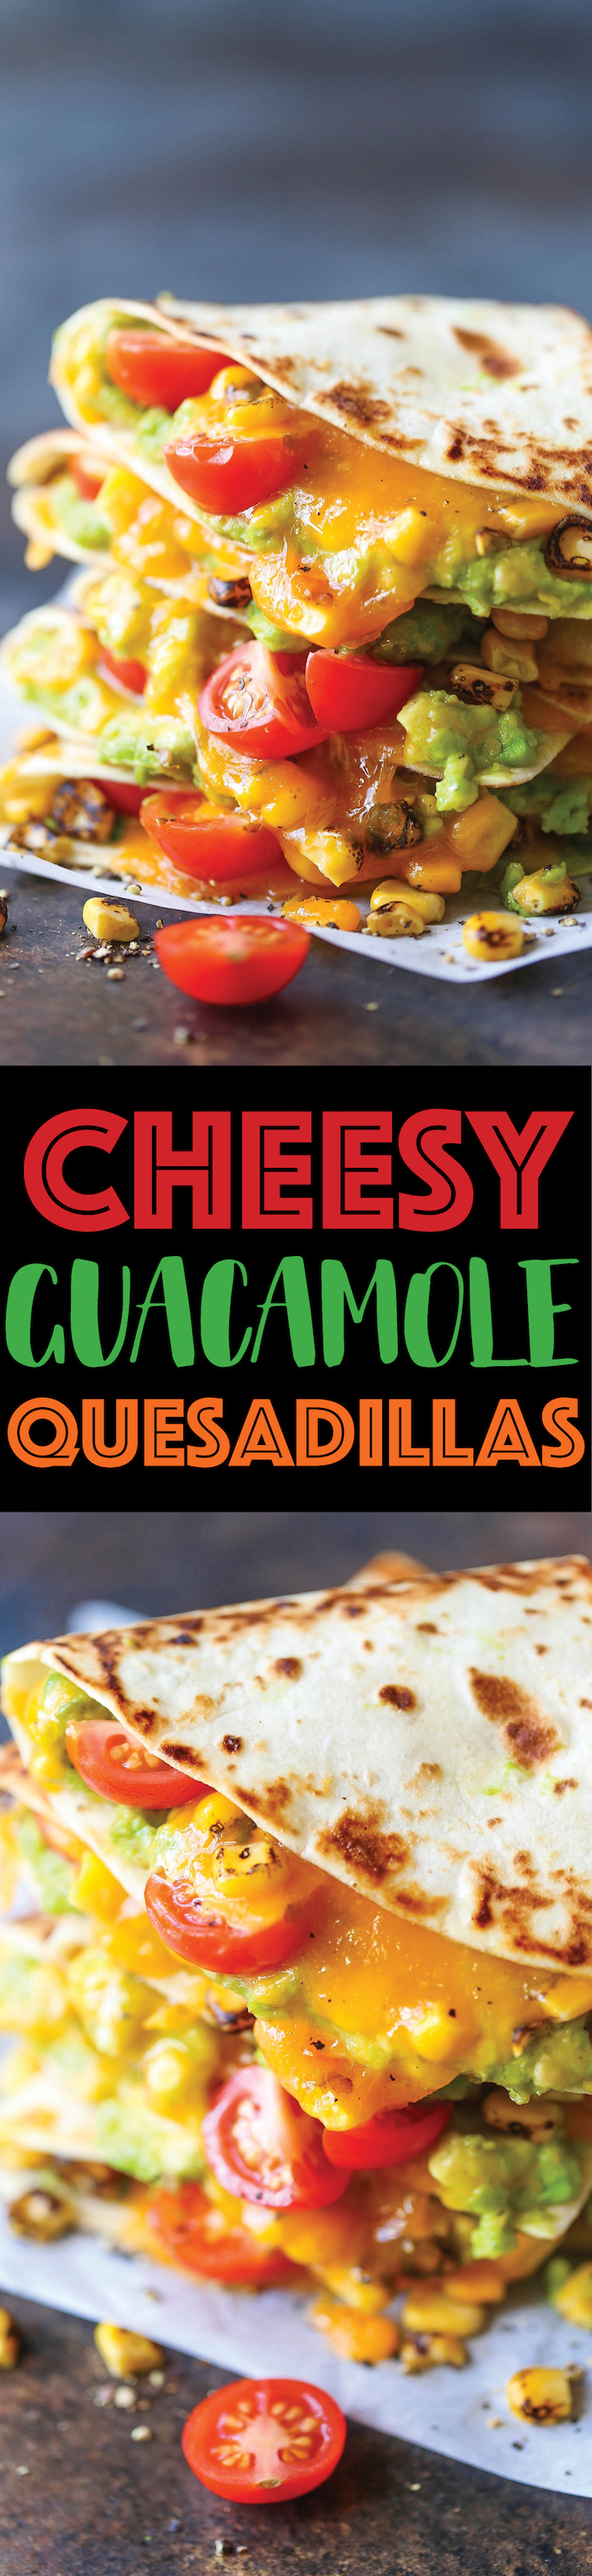 Guacamole Quesadillas - A quick go-to meal with only 5 ingredients! This can be served as an appetizer, side, light lunch or even a main! Sure to be a hit!